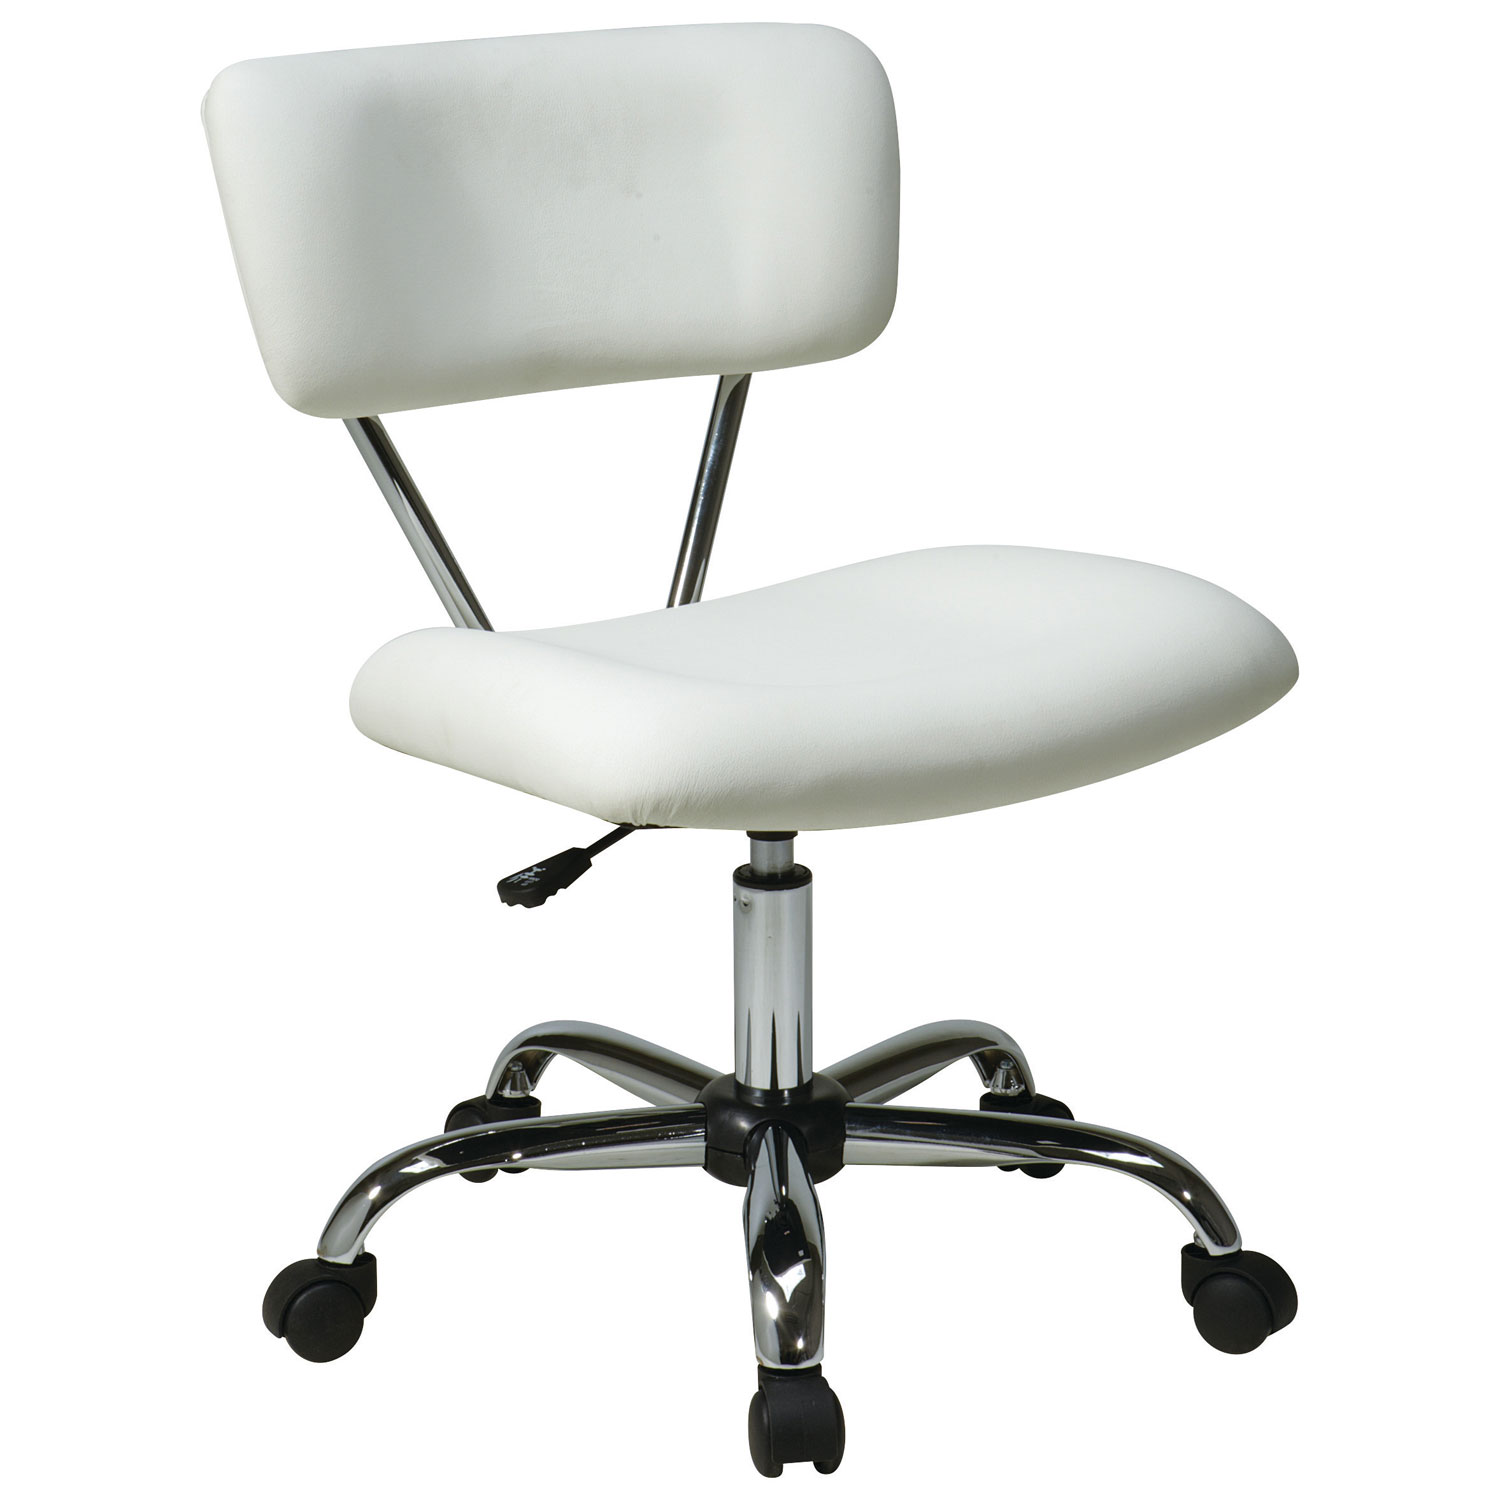 avenue six vista vinyl office chair  white  office chairs  best  - avenue six vista vinyl office chair  white  office chairs  best buycanada